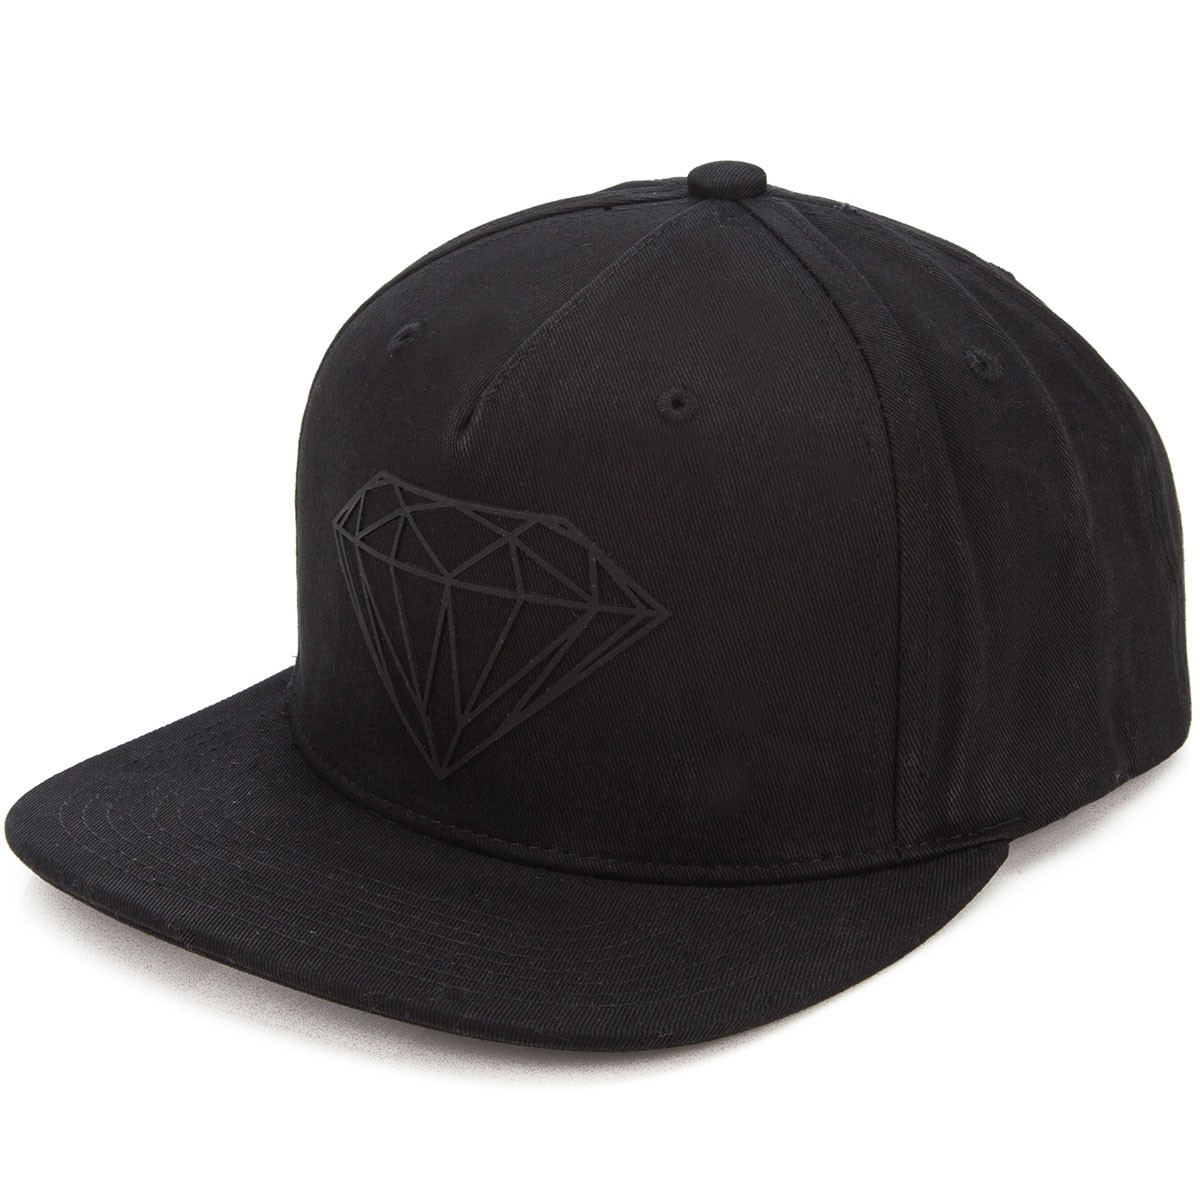 8d3633a0463904 Diamond Supply Co. Blackout Snapback Hat - Black